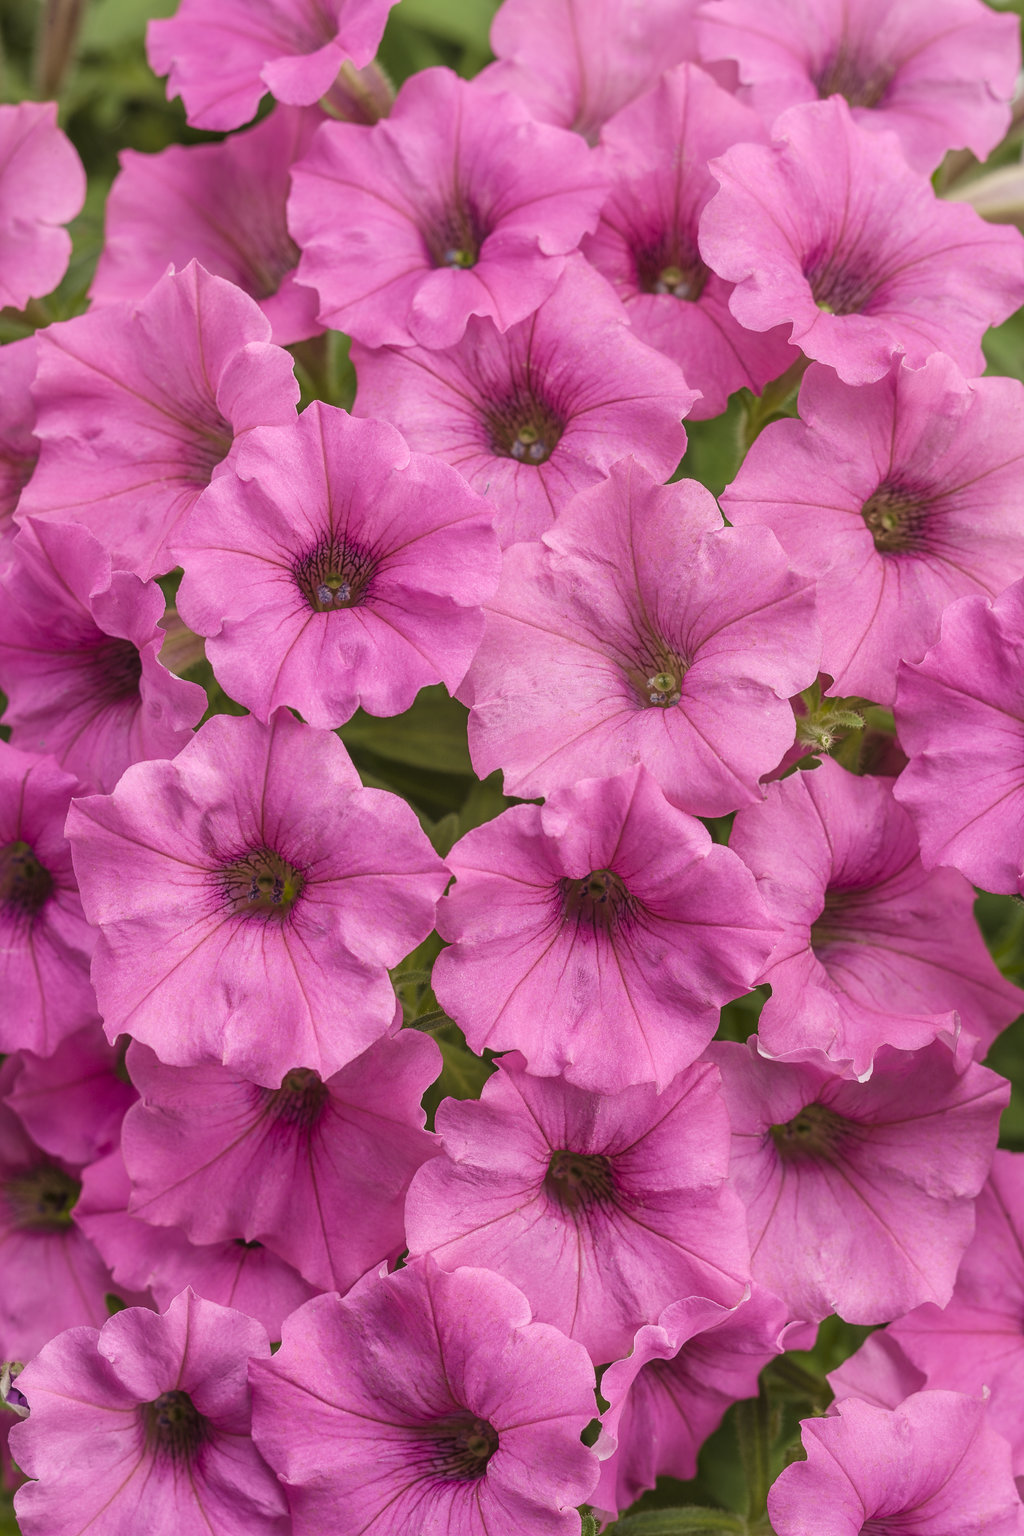 Supertunia® Hot Pink Charm - Petunia hybrid | Proven Winners